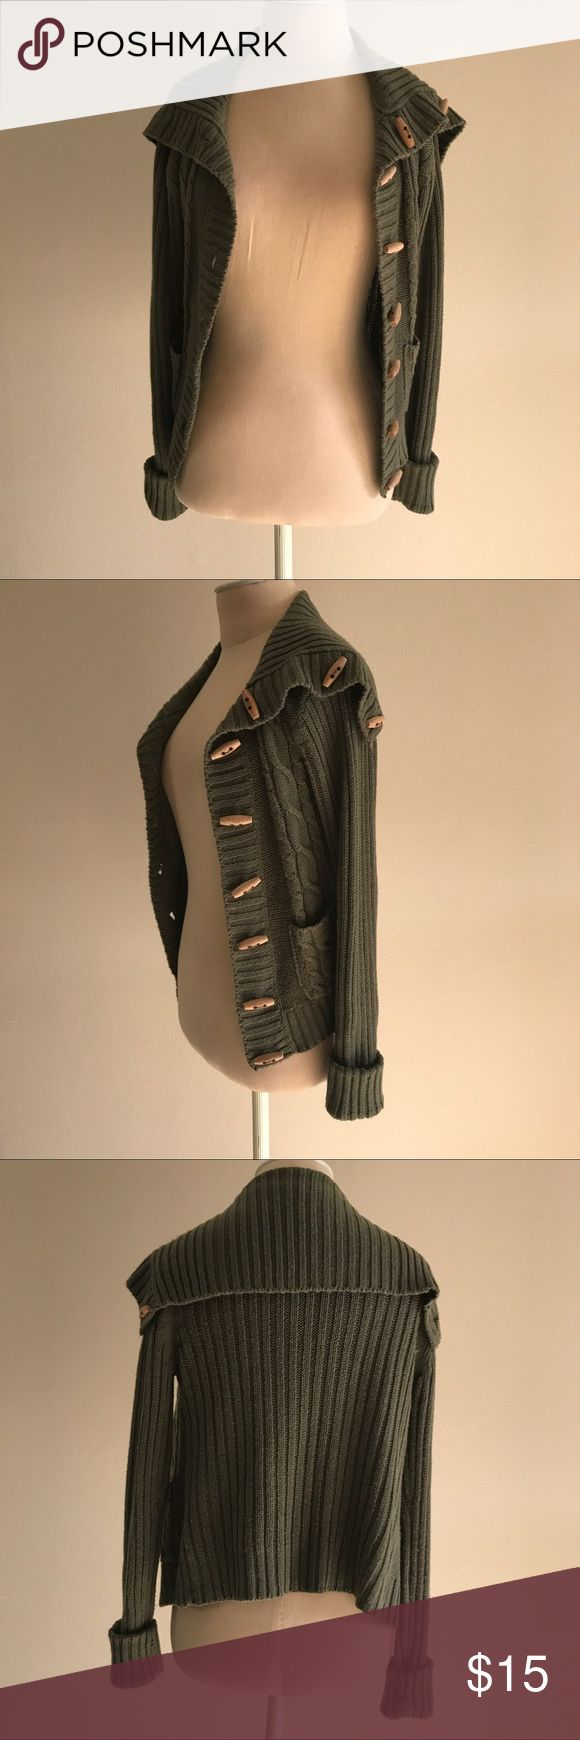 Olive Green Cardigan Comfy and cozy olive cardigan. Great condition! Size medium. Sweaters Cardigans